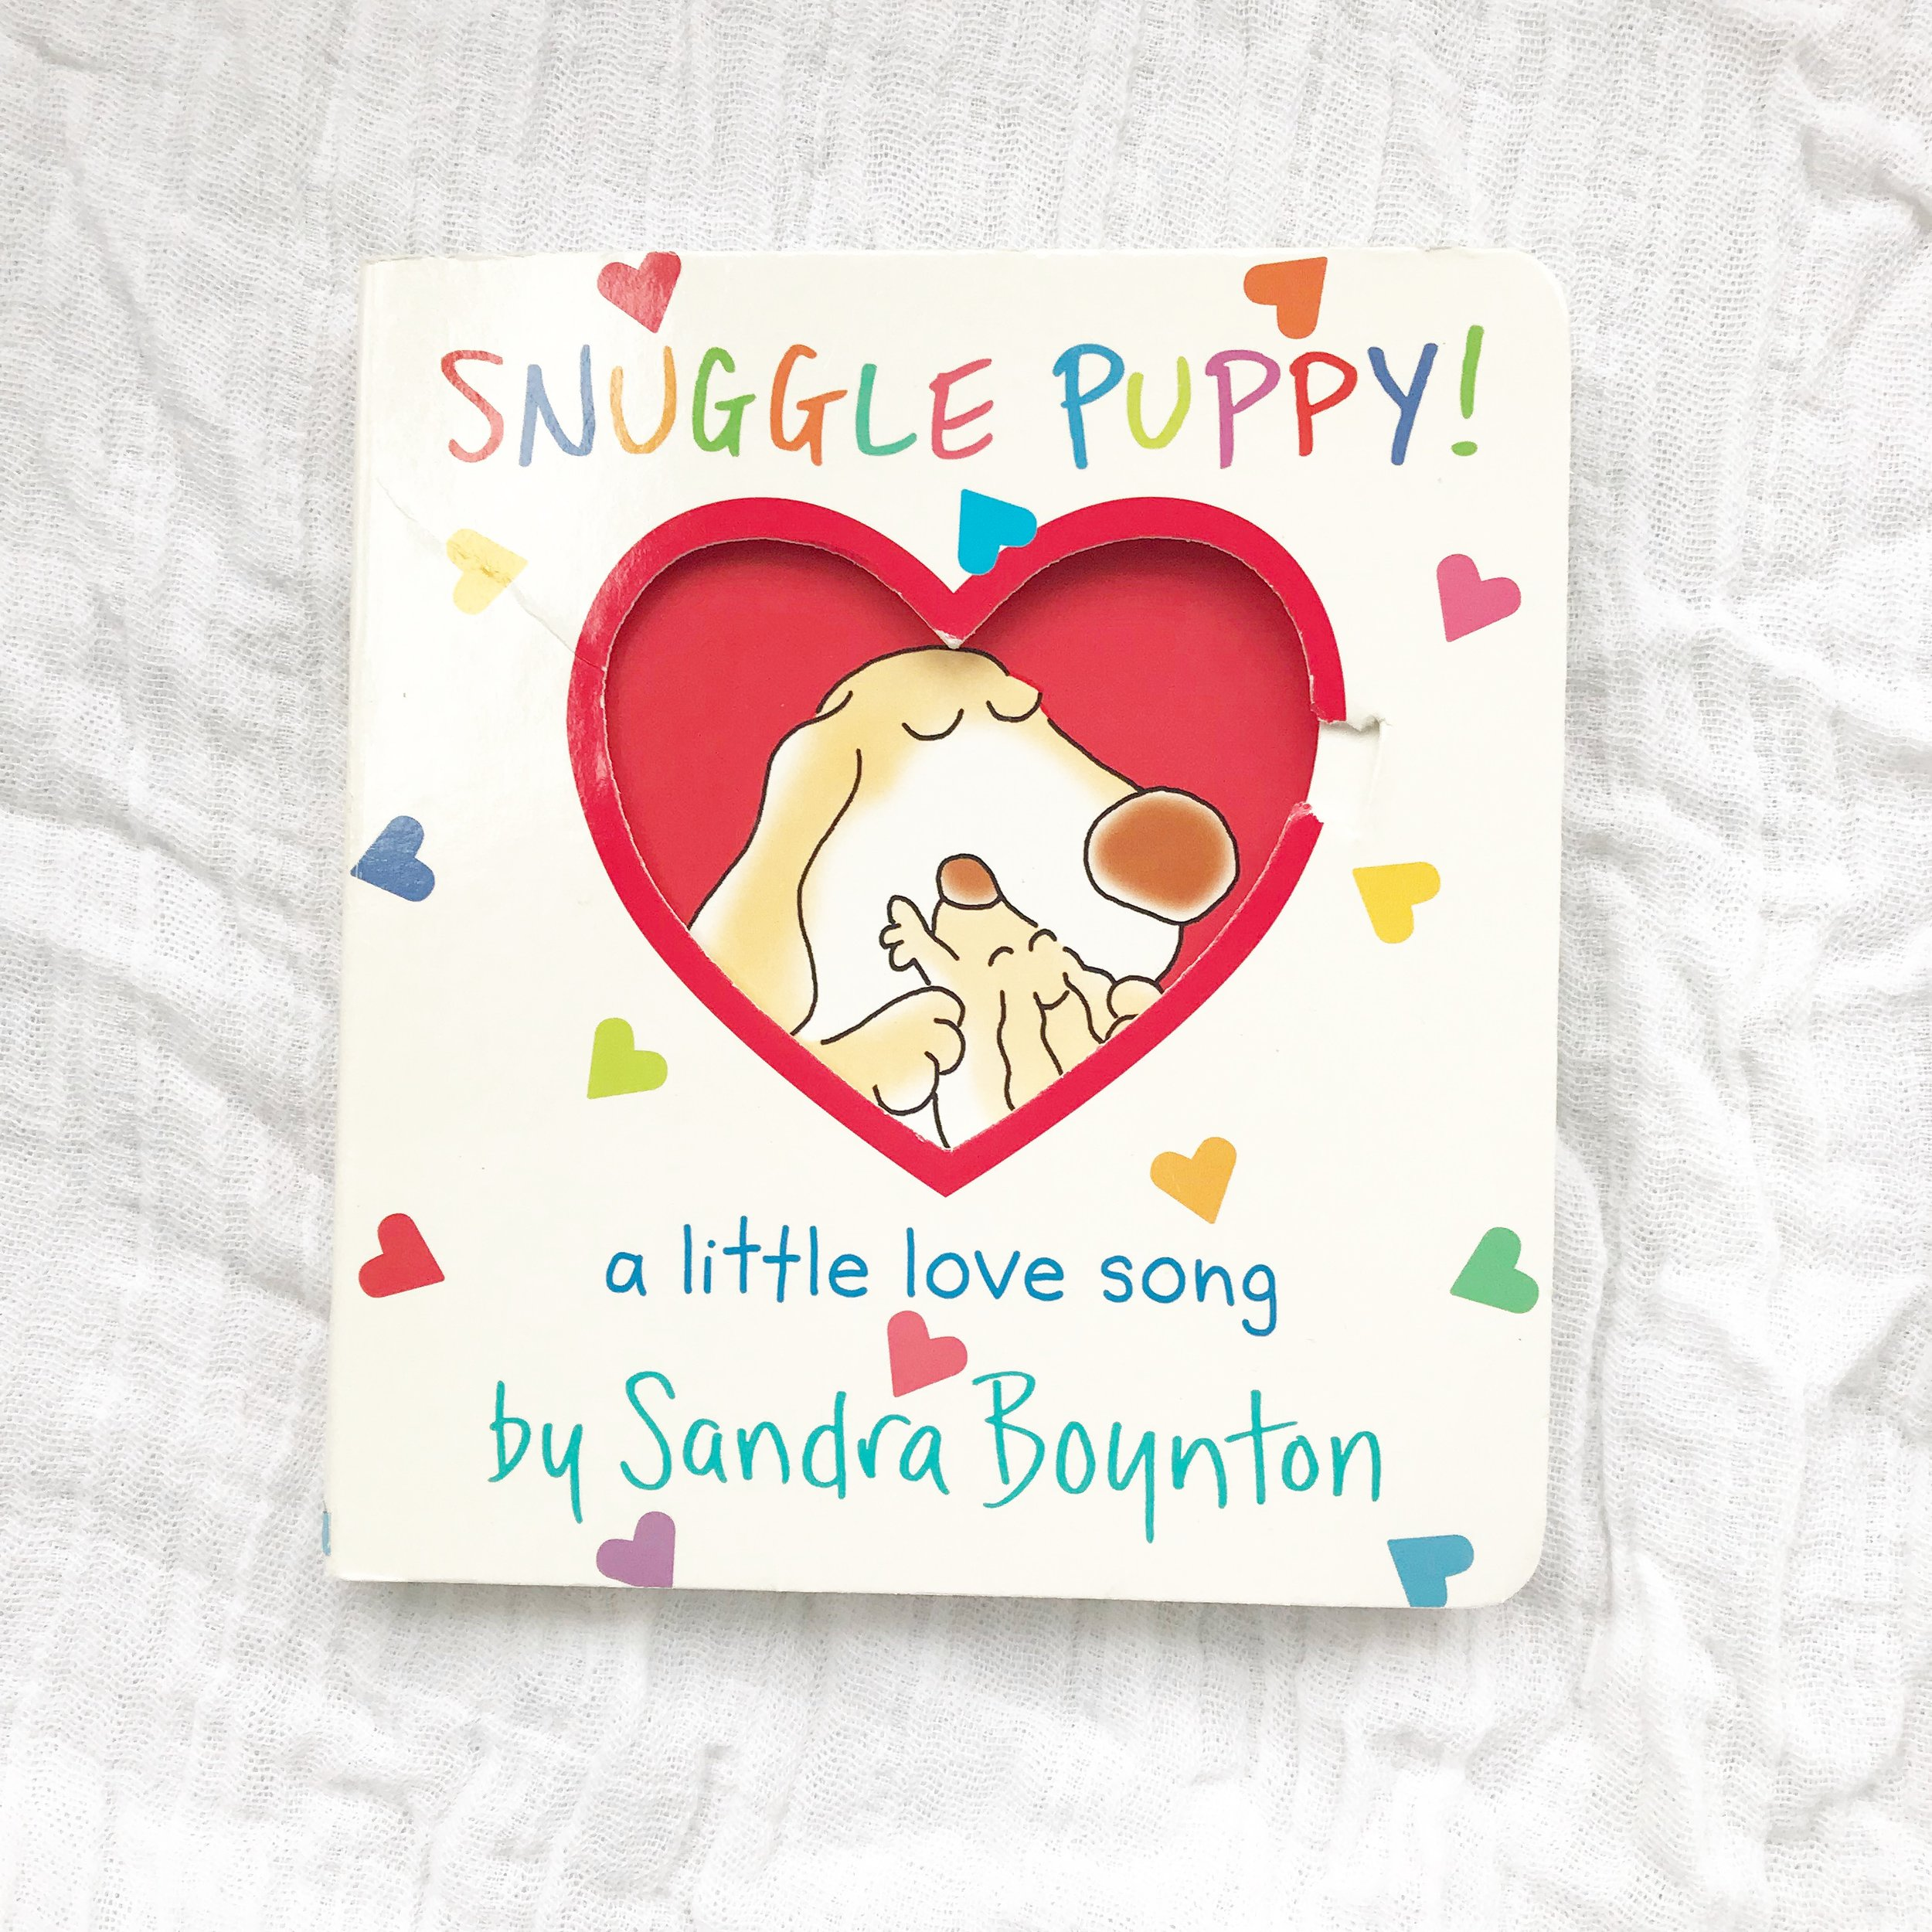 Snuggle Puppy   My kids love Sandra Boynton books - this one is just as silly and playful.  Skip this one if you don't like singing ridiculous songs.